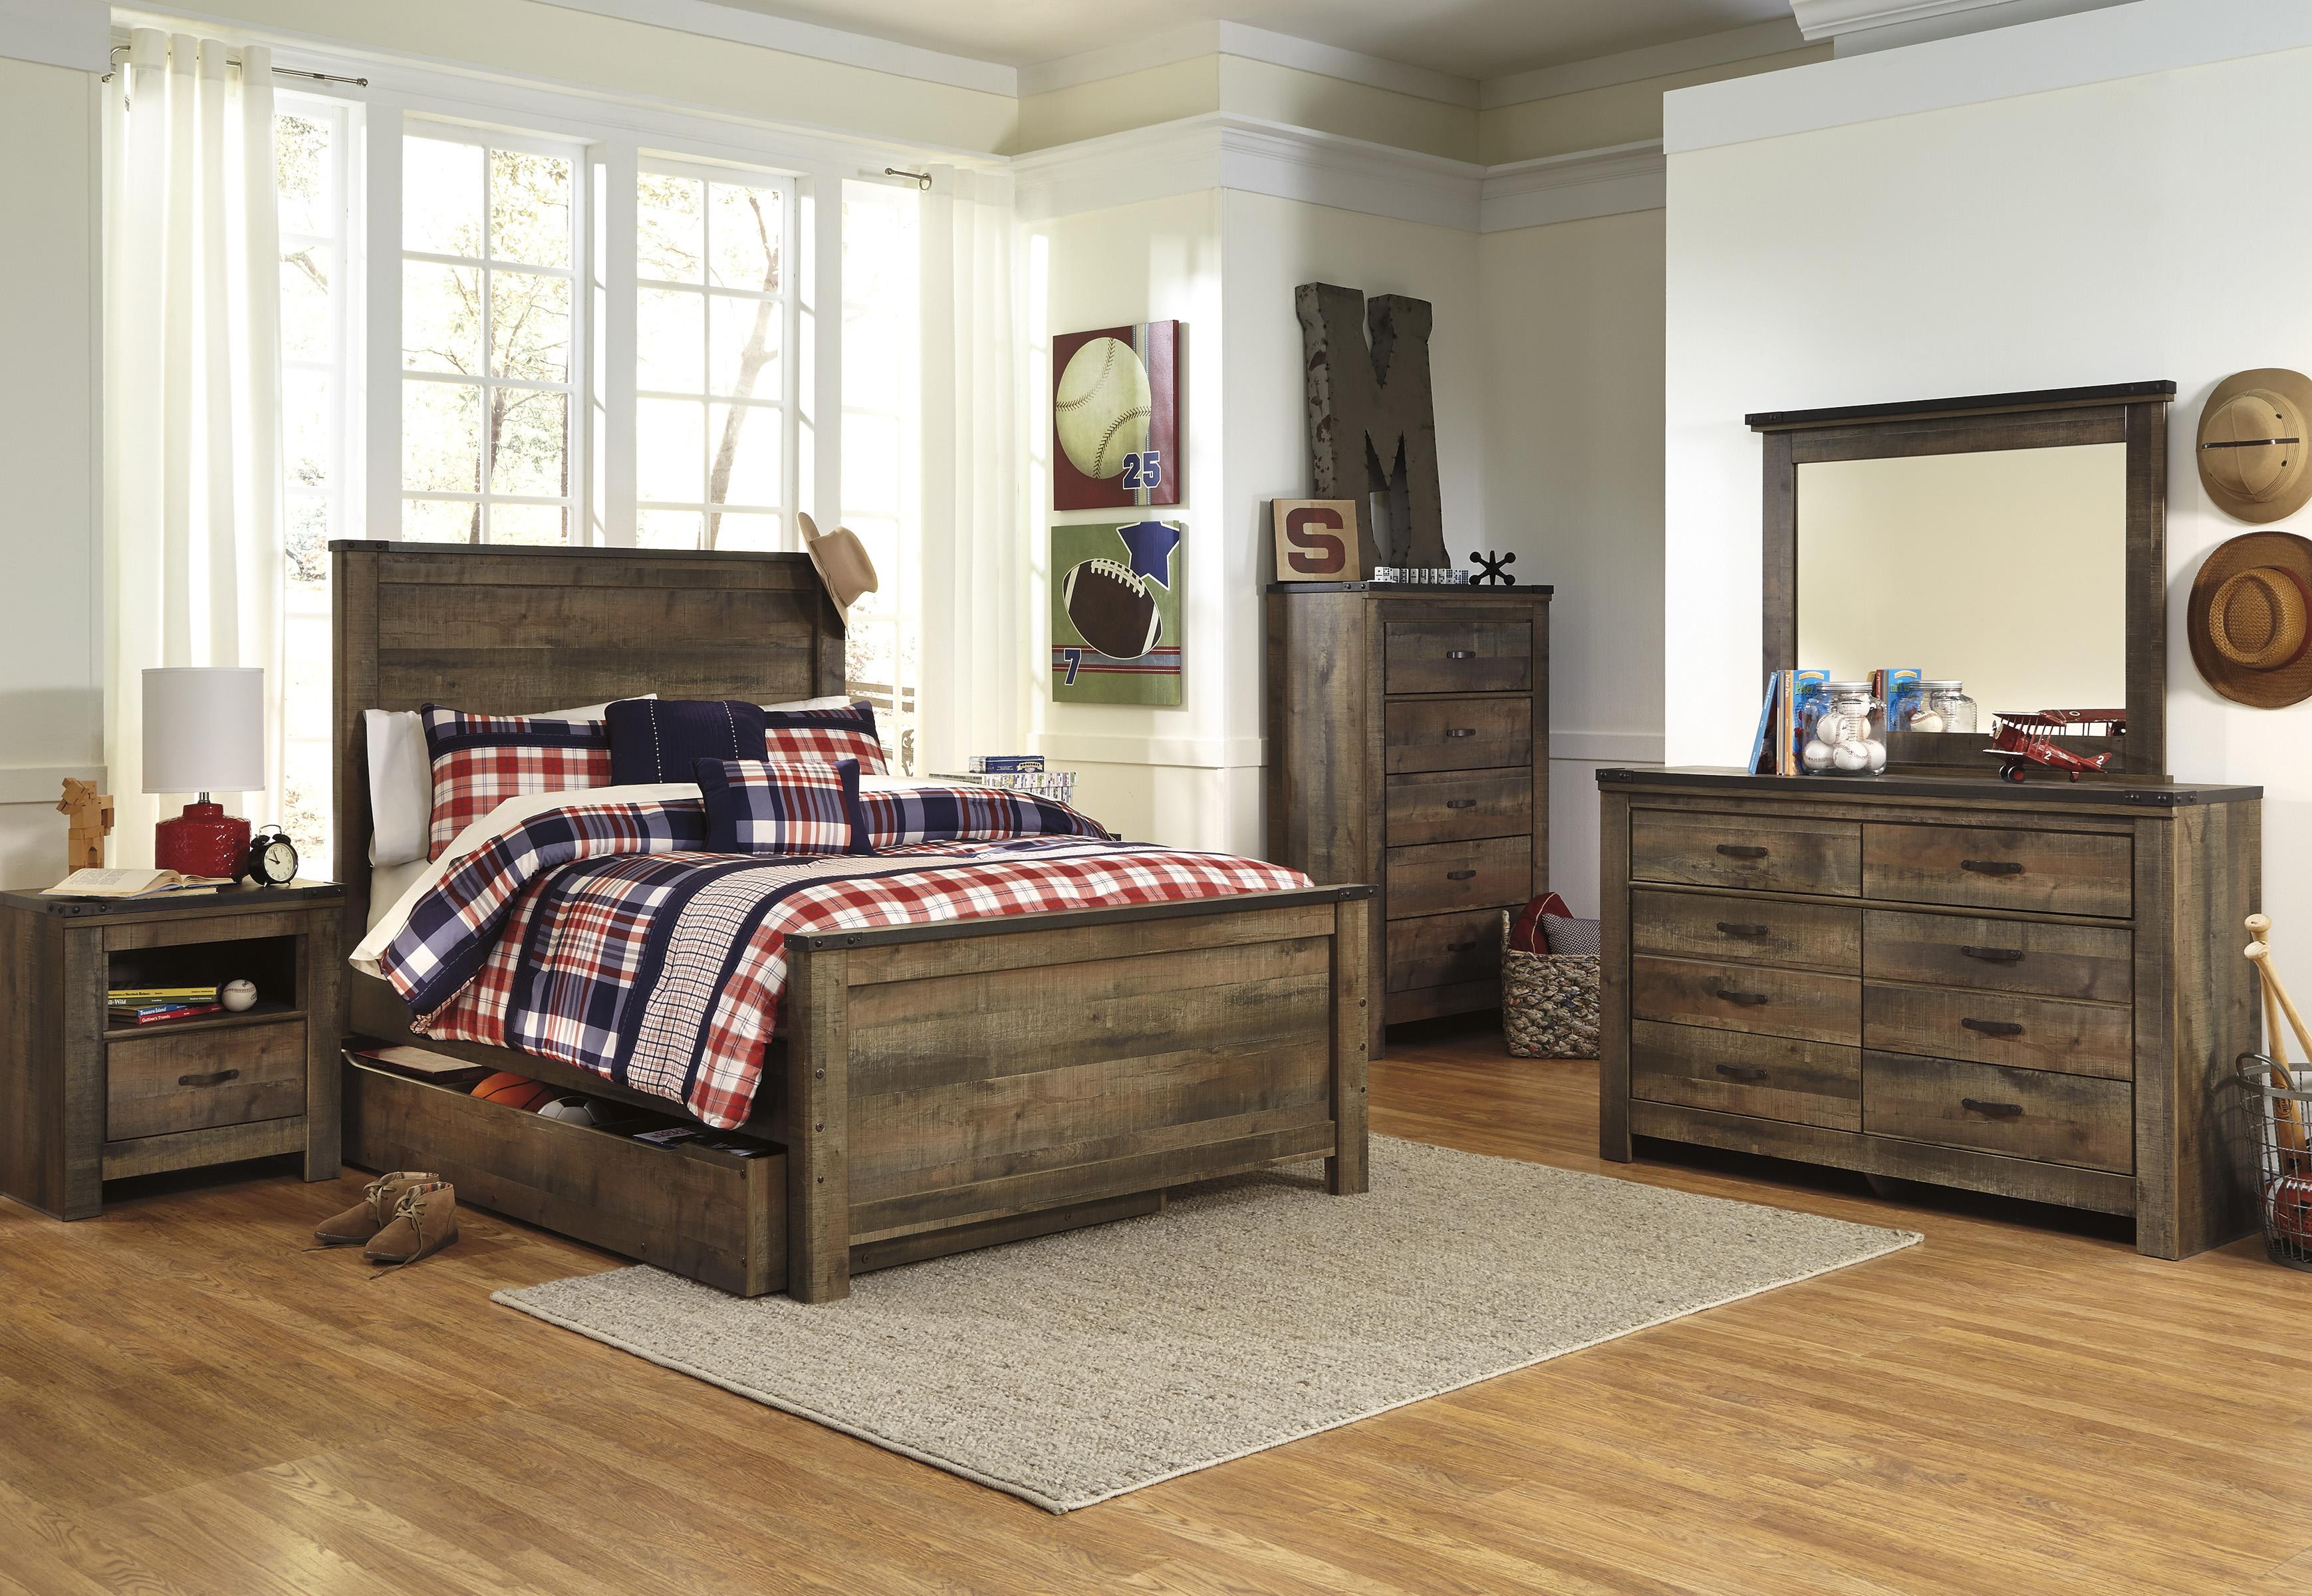 signature design by ashley trinell full bedroom group household furniture bedroom groups. Black Bedroom Furniture Sets. Home Design Ideas